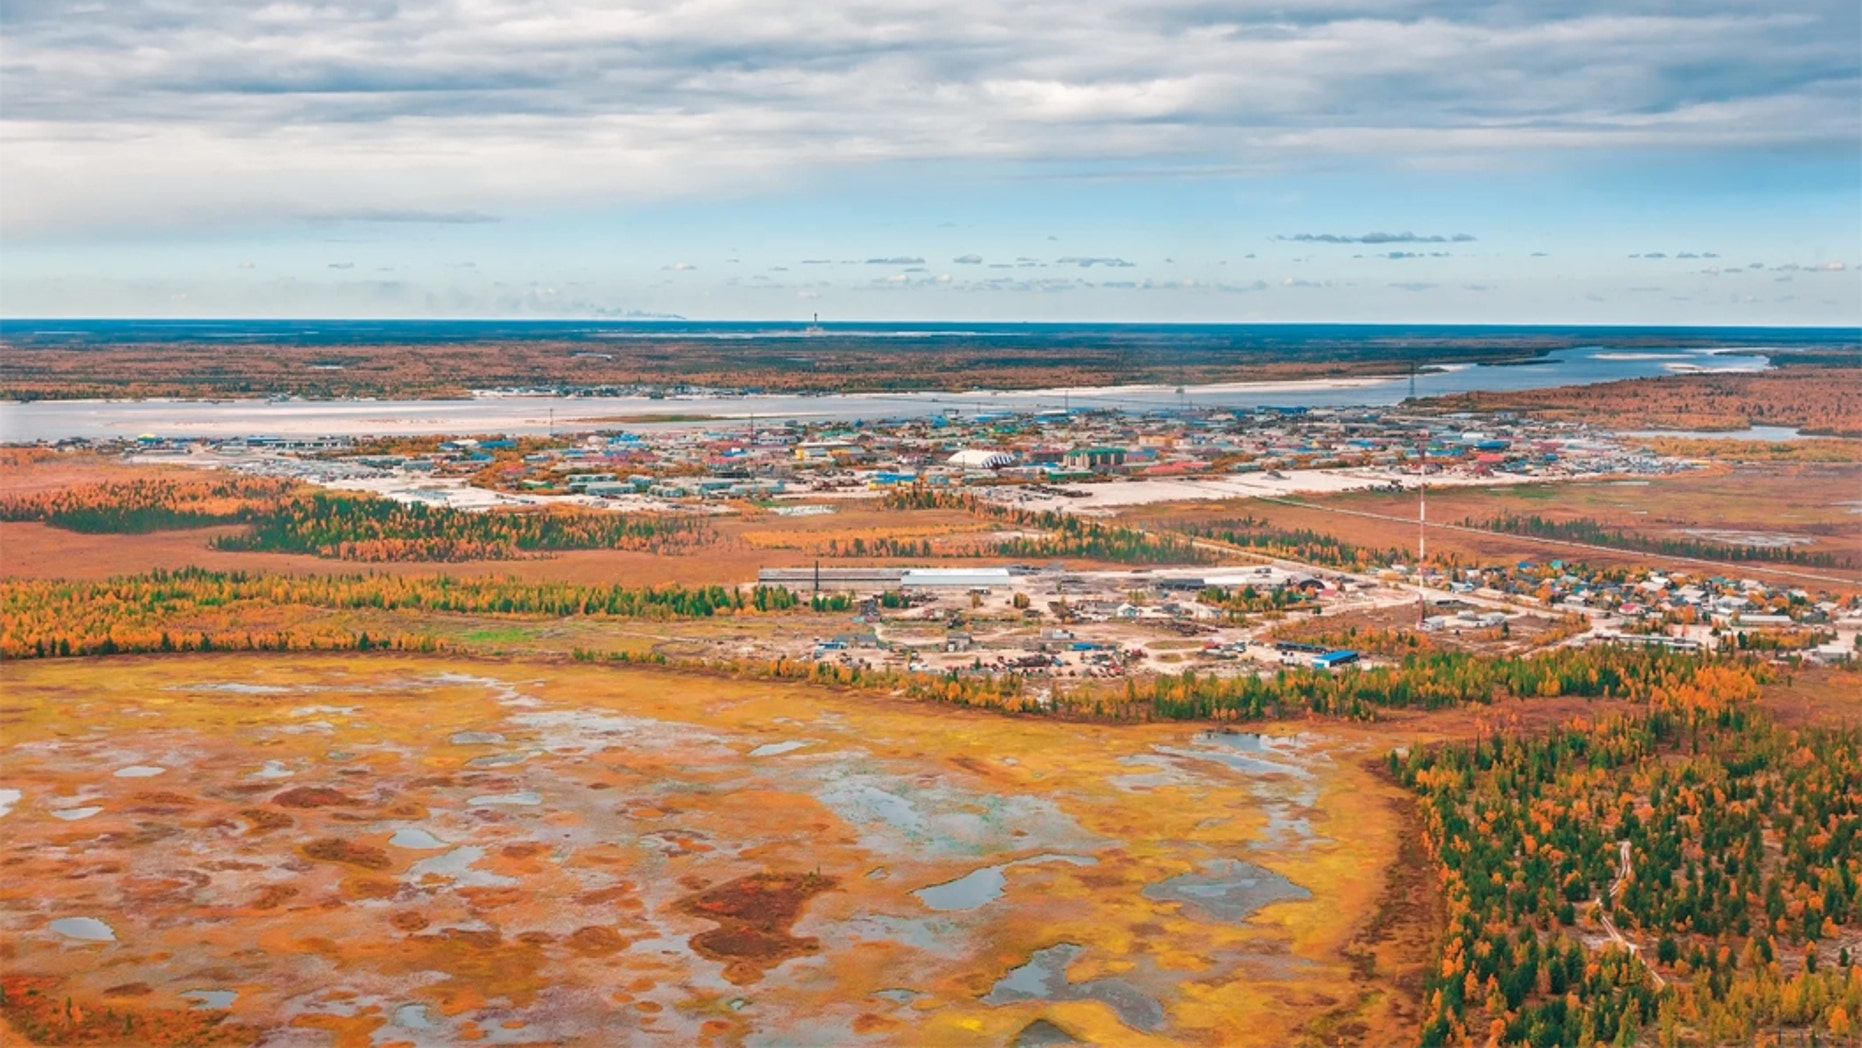 Melting permafrost on a Jamal segment of Russia. New investigate suggests that permafrost in a Canadian Arctic is melting rapidly, and vast swaths of permafrost worldwide are exposed to this accelerated thawing Credit: Georgy Golovin/Getty